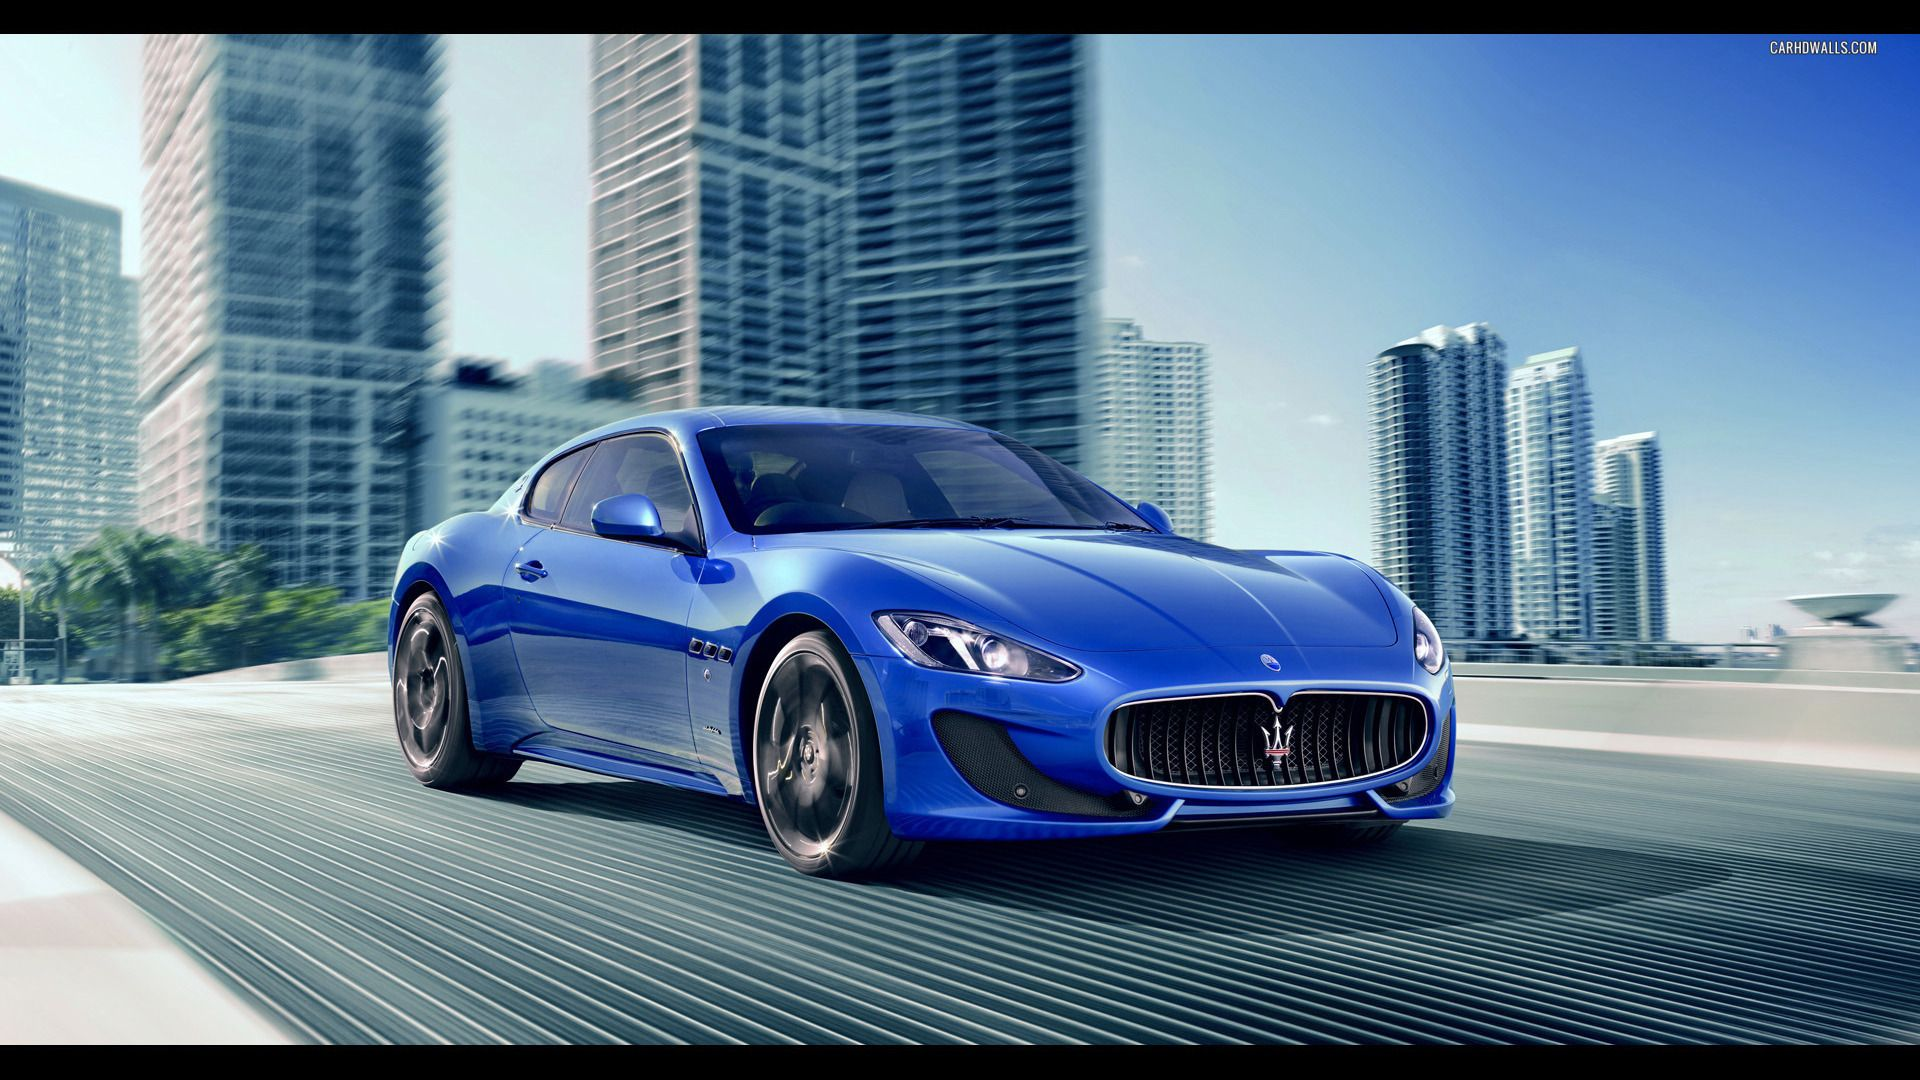 Full Maserati Quattroporte Wallpaper Hd